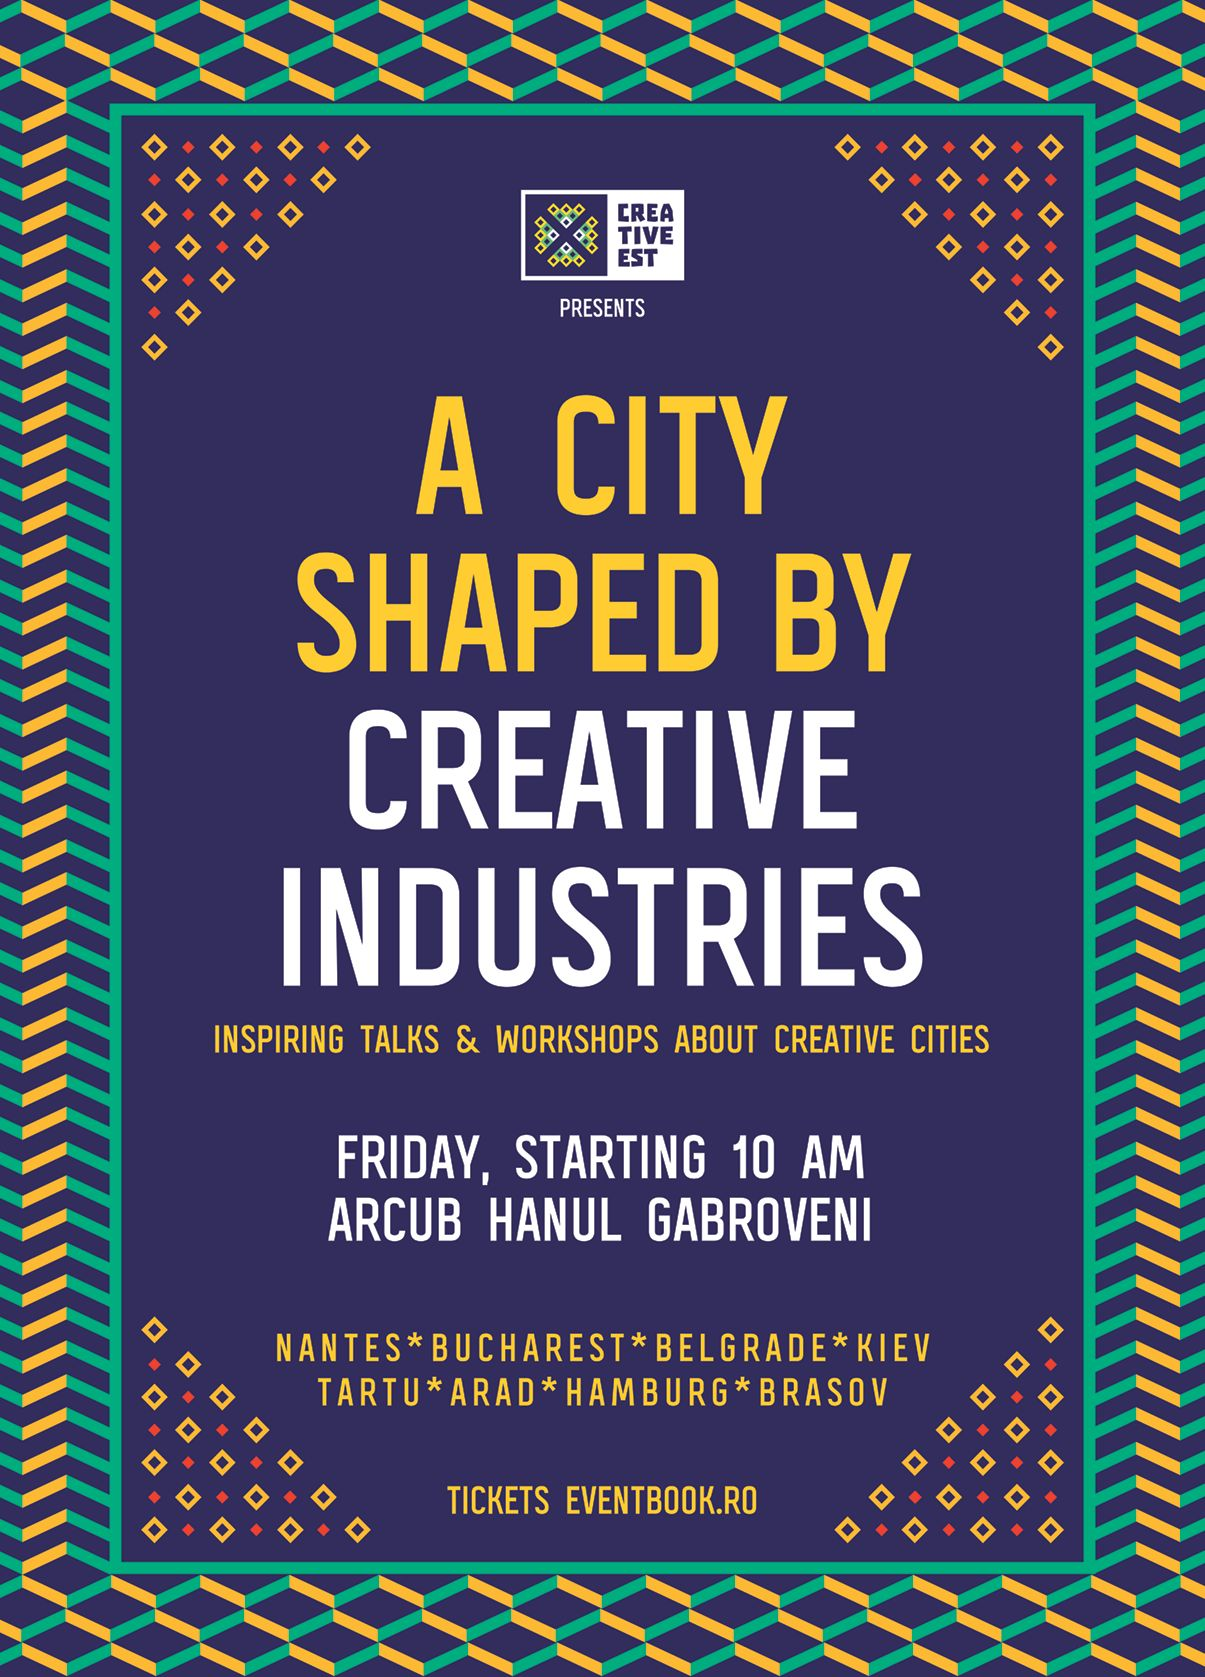 Poster A City Shaped by Creative Industries